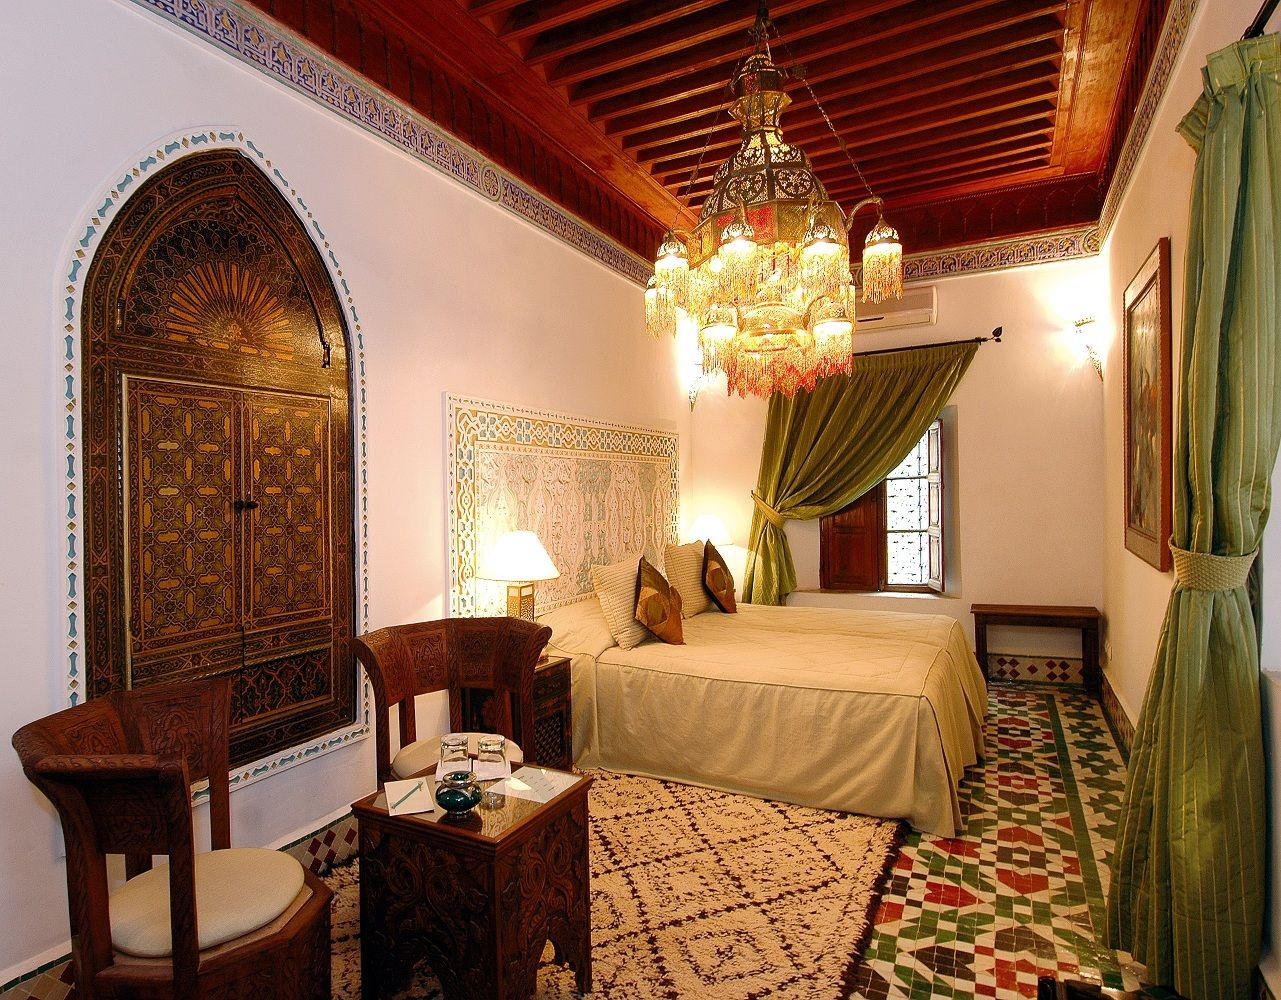 extraordinary the moroccan lounge their house museum | Guest Palace of 25 suites and bedrooms Title deeds 1150 ...